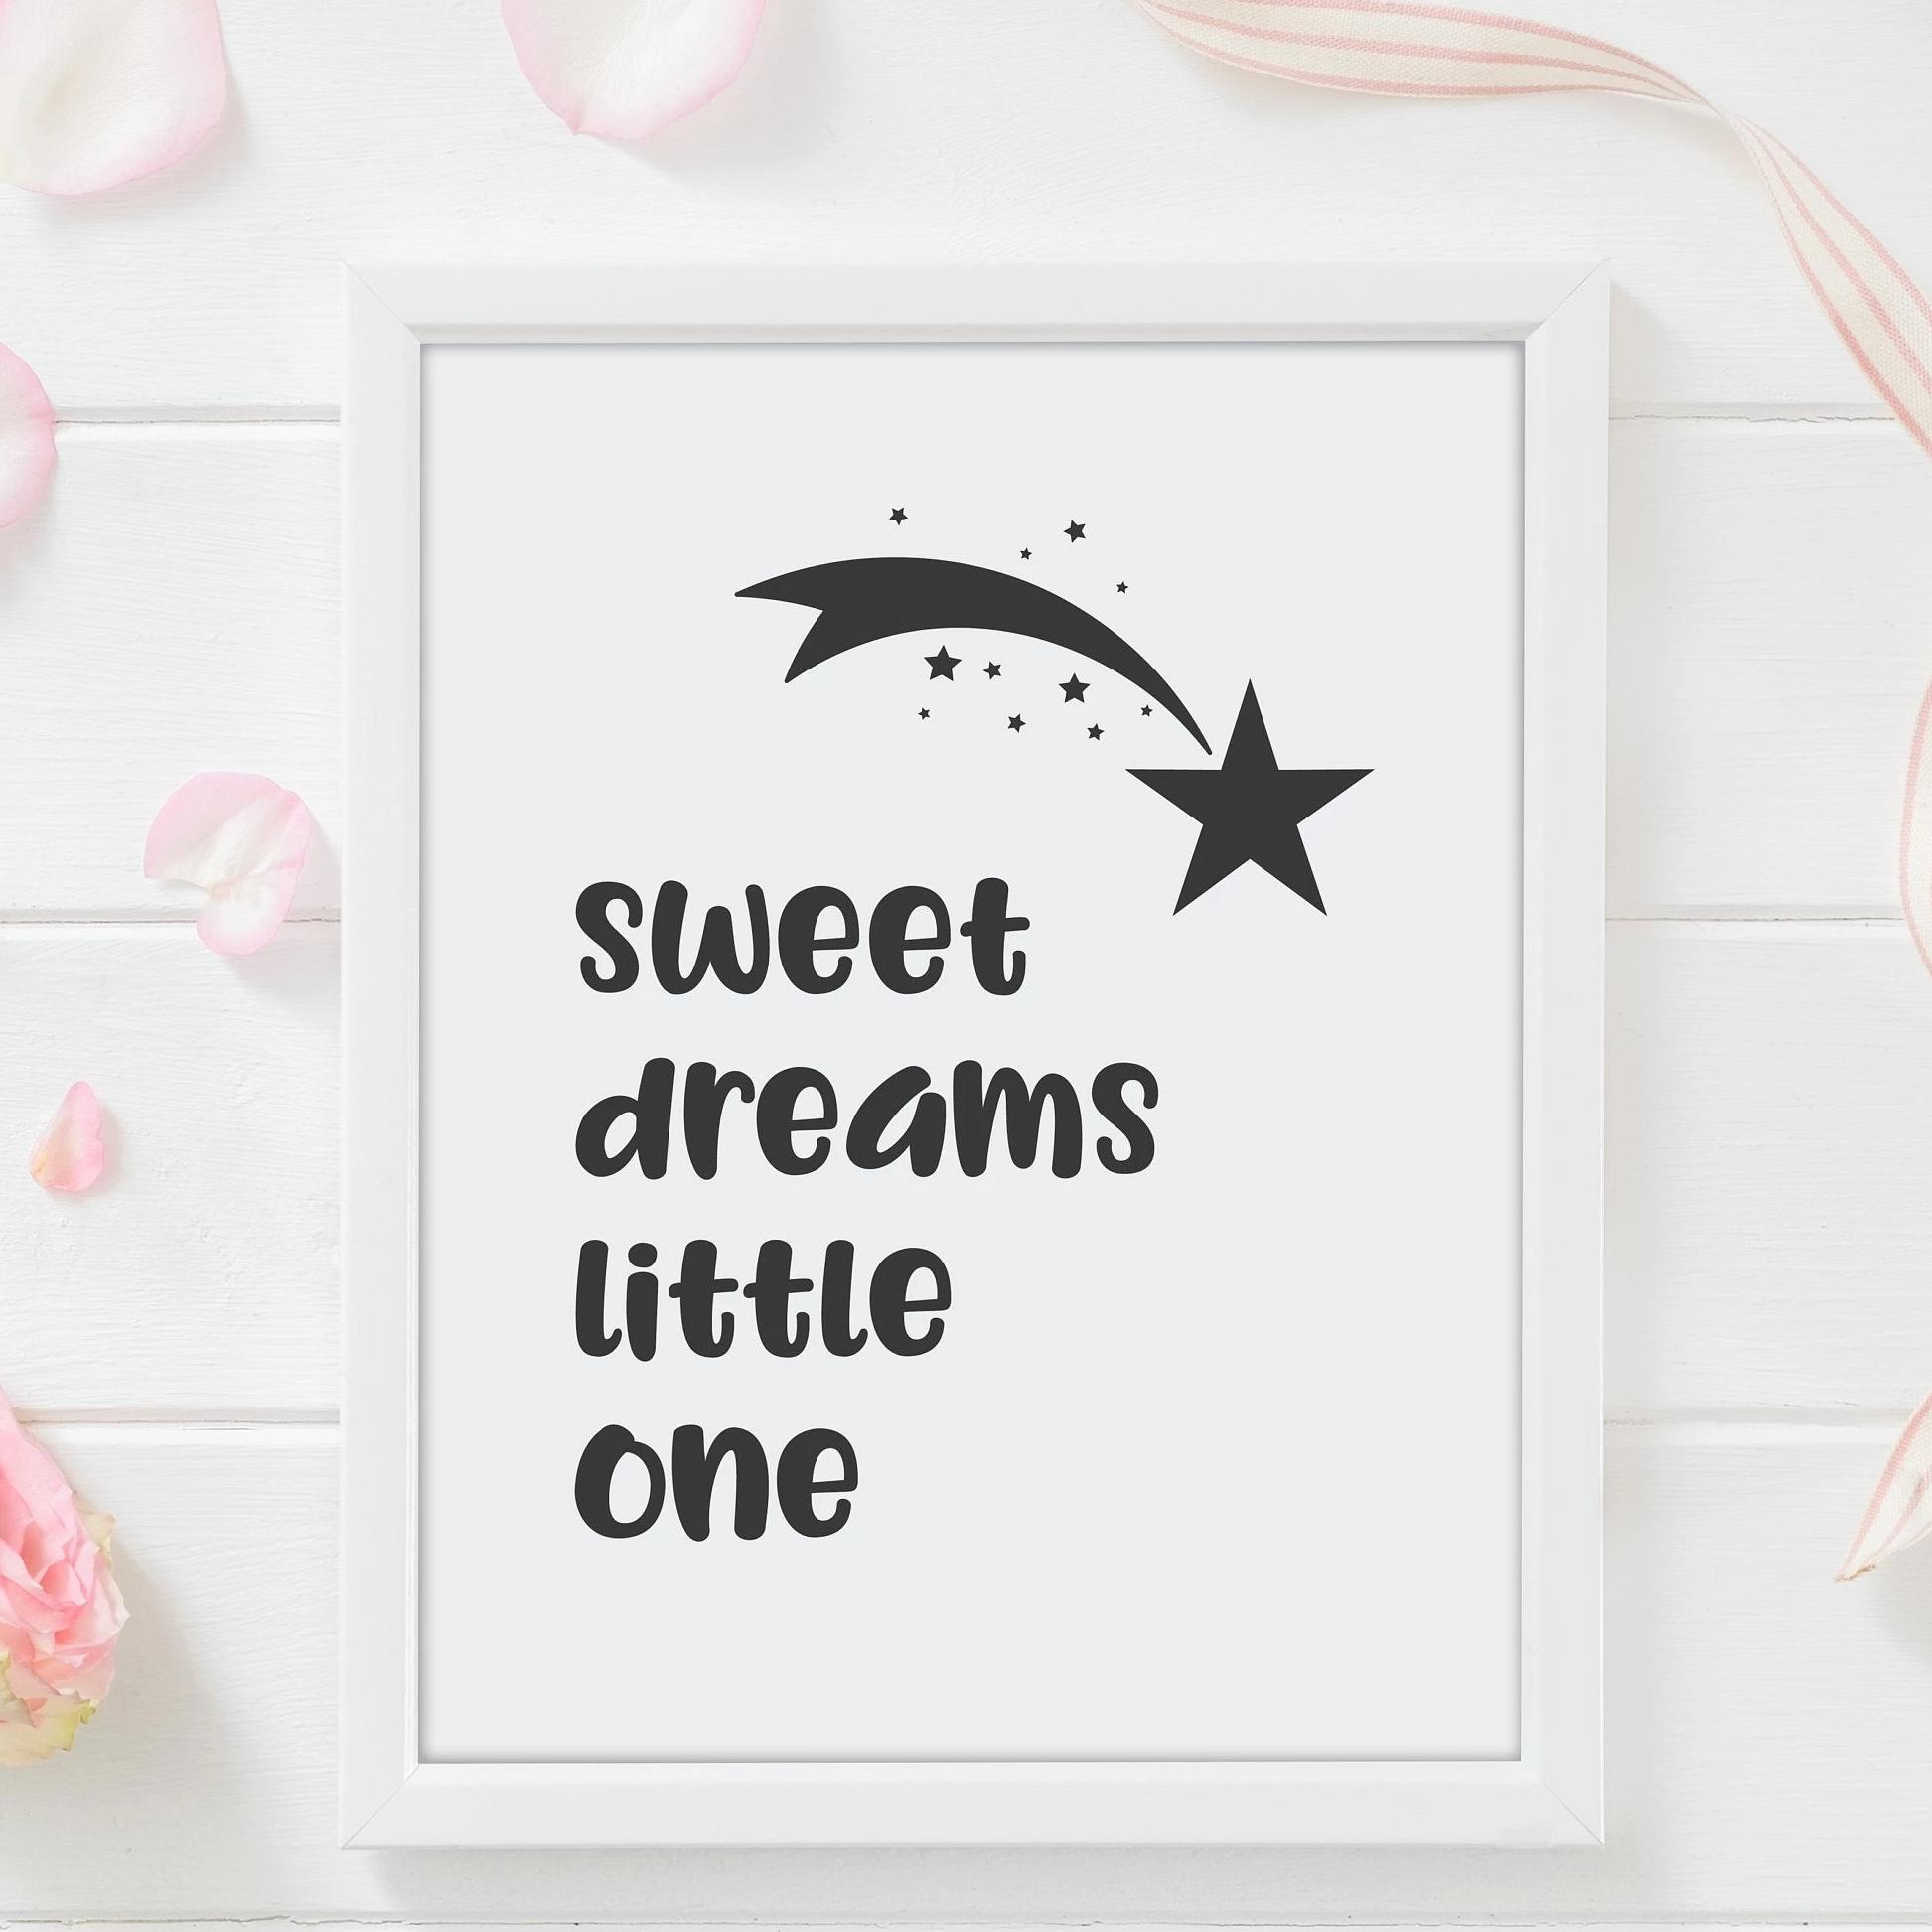 Leanne & Co. Digital Print Sweet Dreams Little One